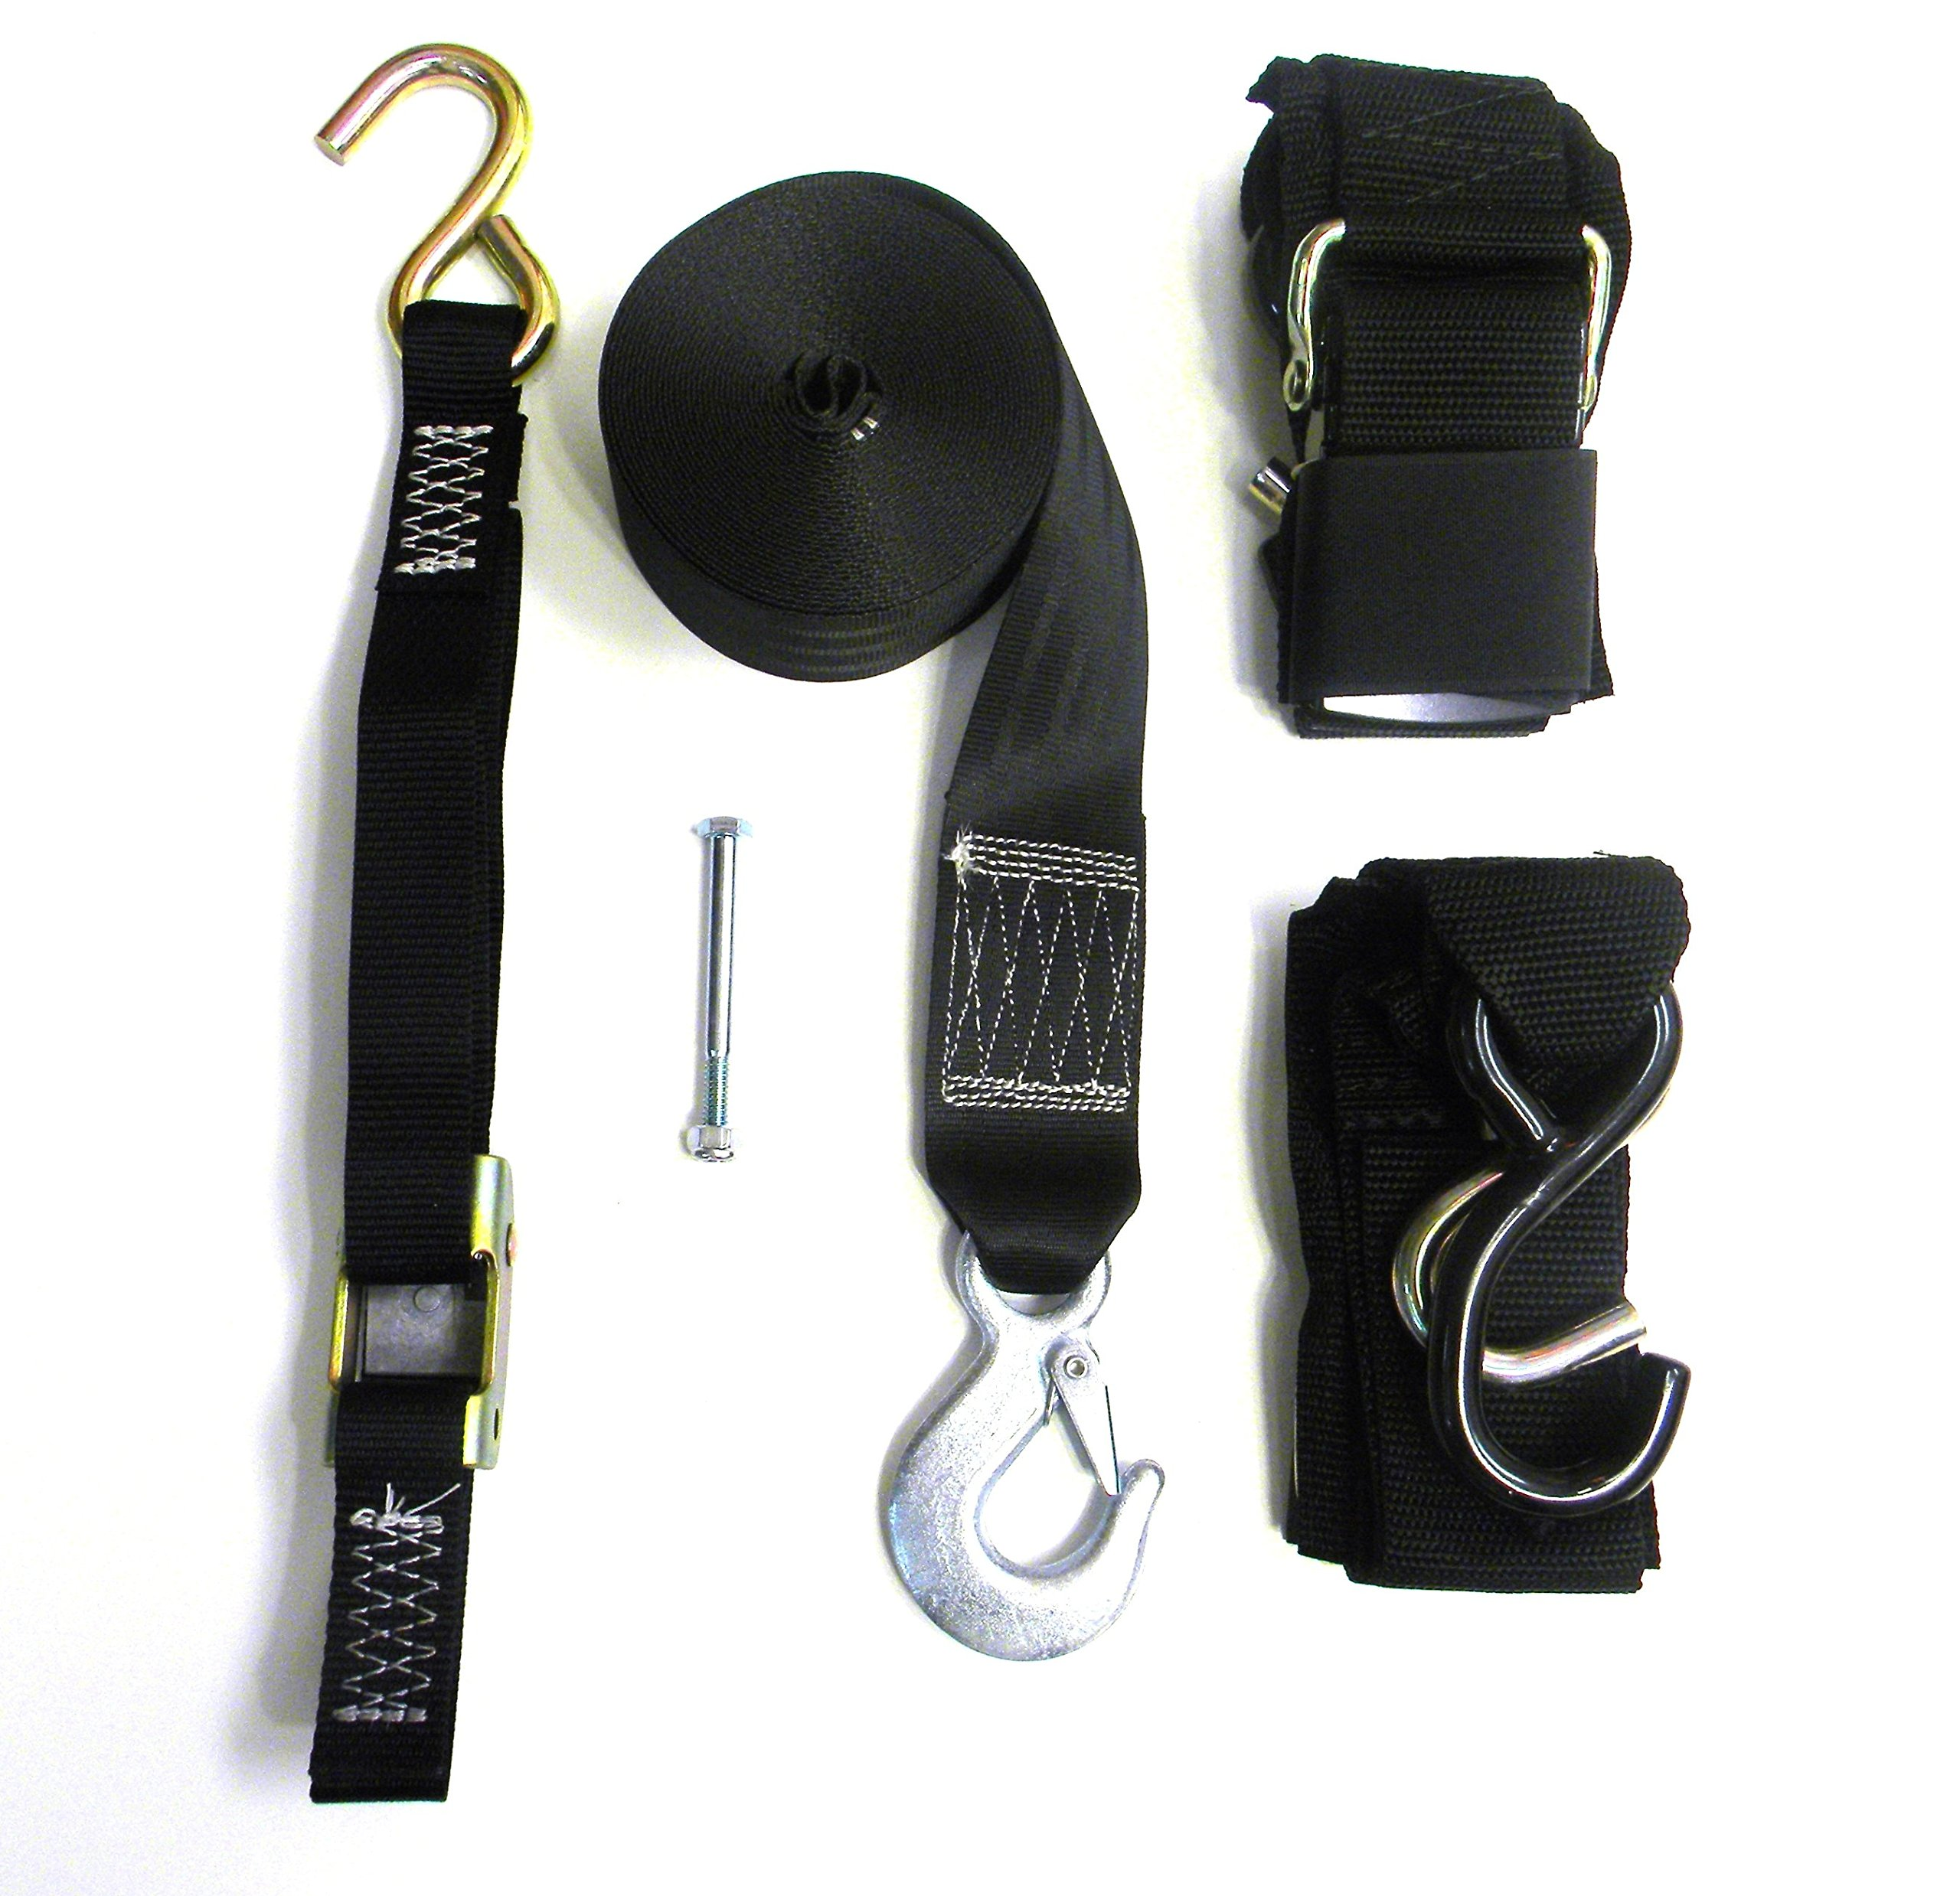 Rod Saver Tie Down Combo Pack by Rod Saver